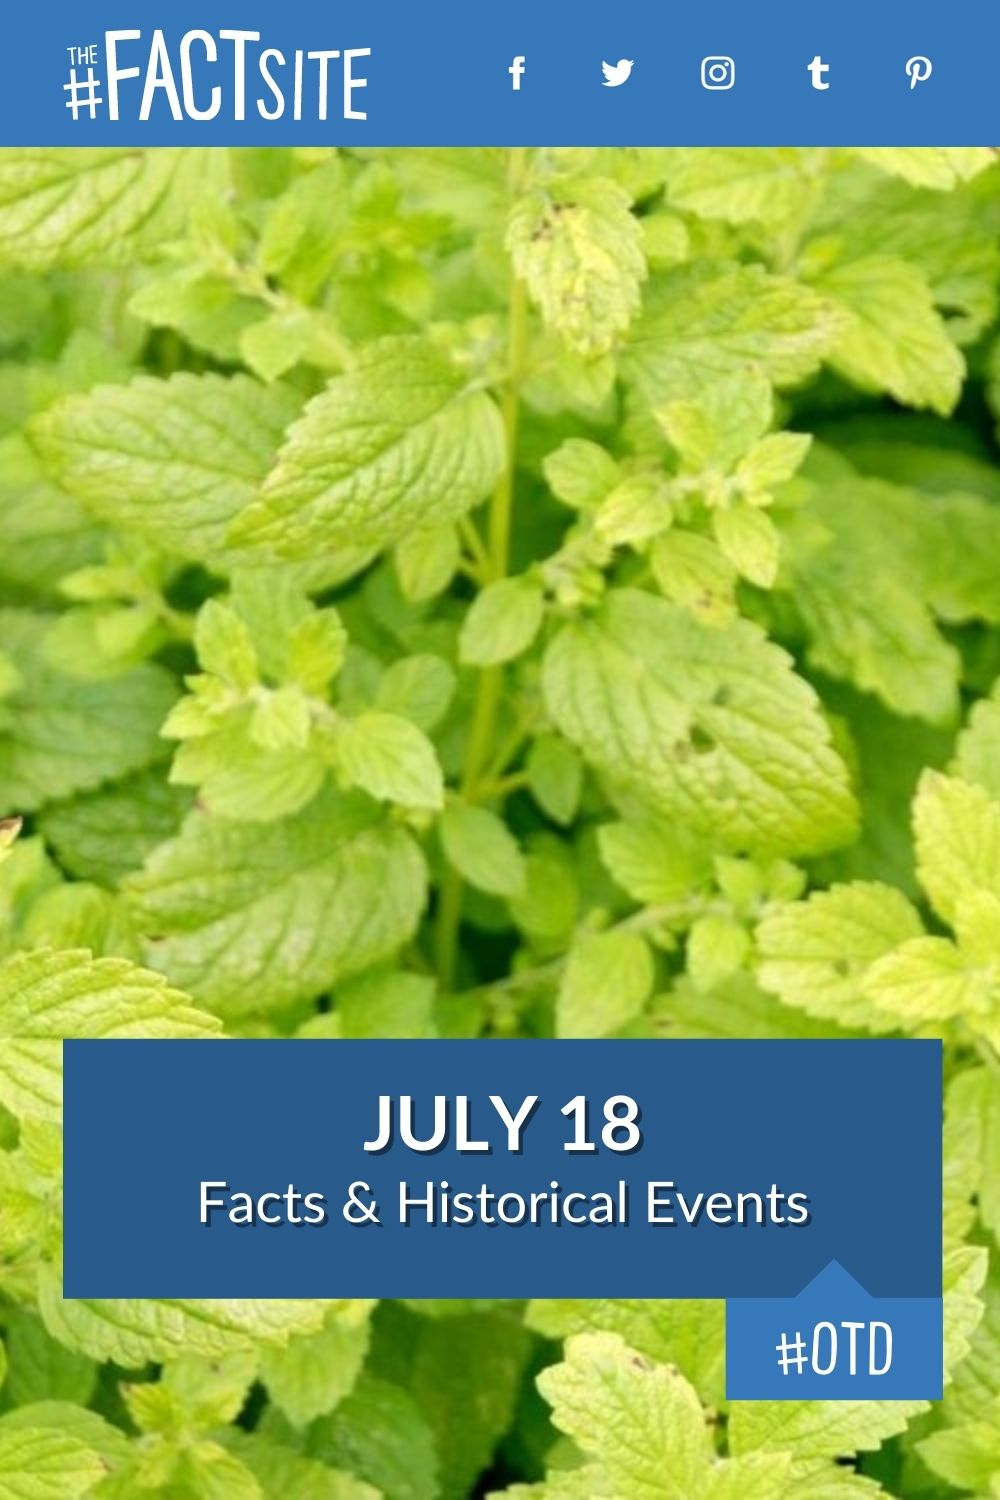 Facts & Historic Events That Happened on July 18